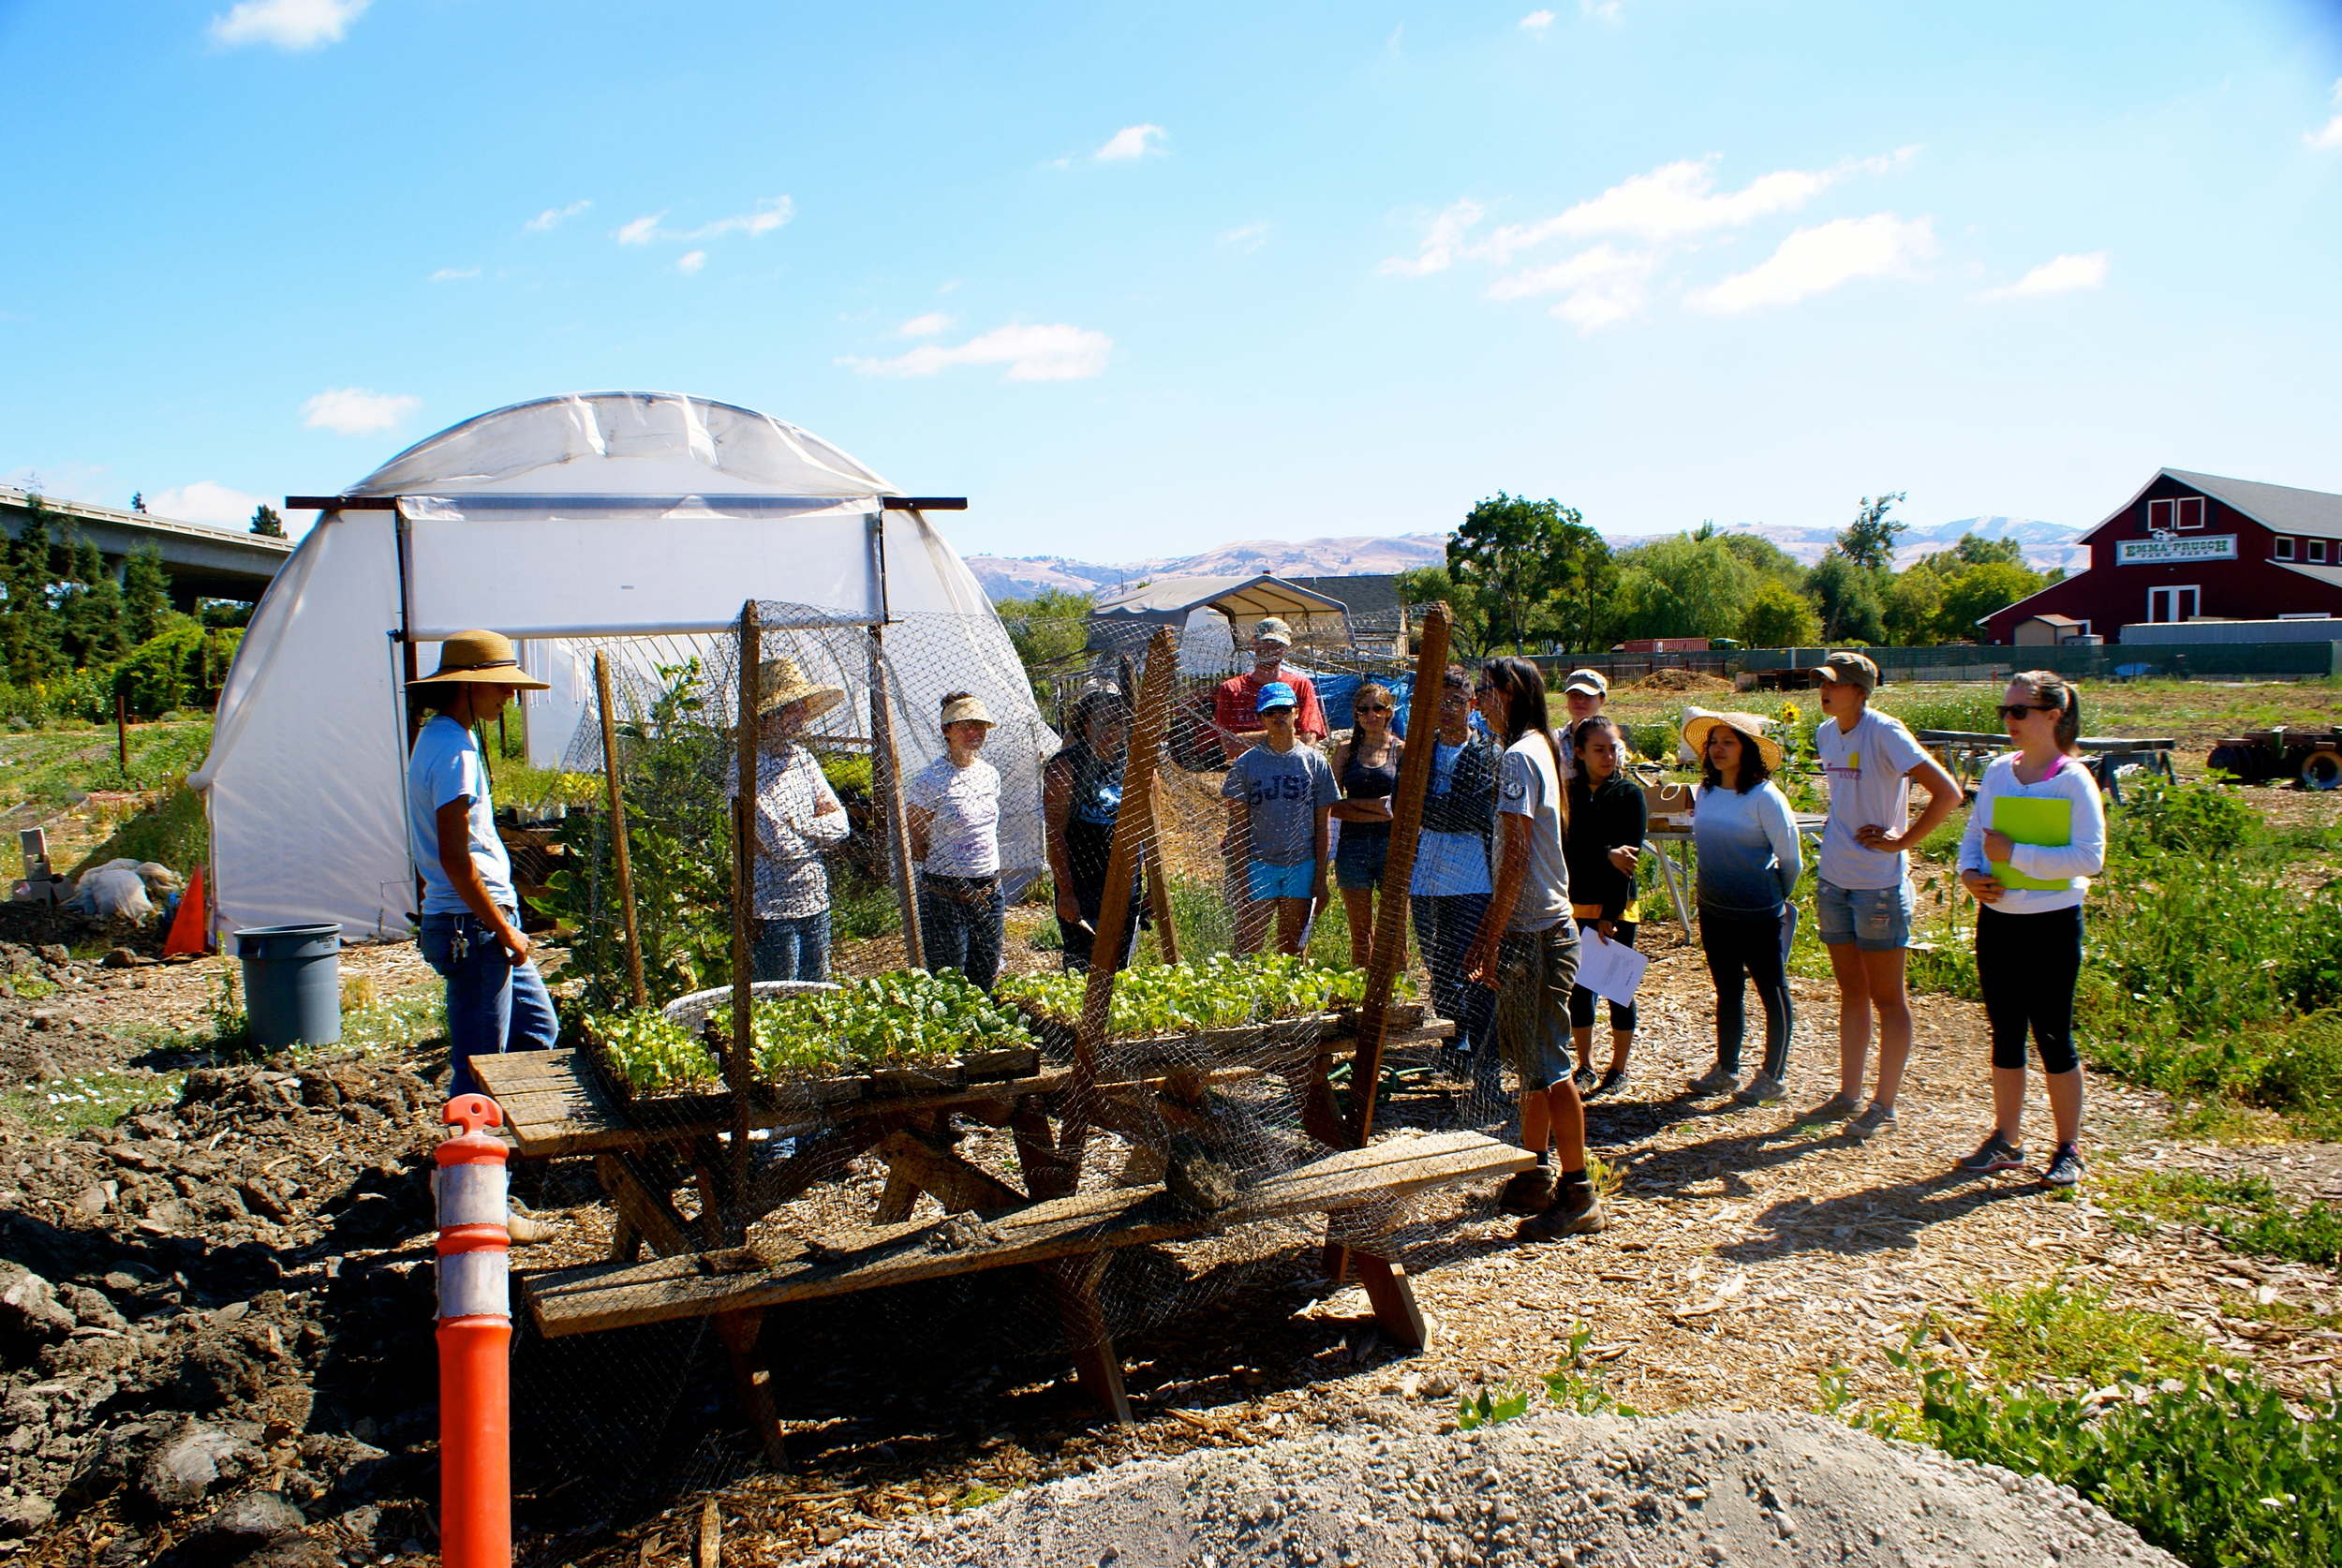 HealthCorps member, Mika, talks to the interns about hardening off seedlings.